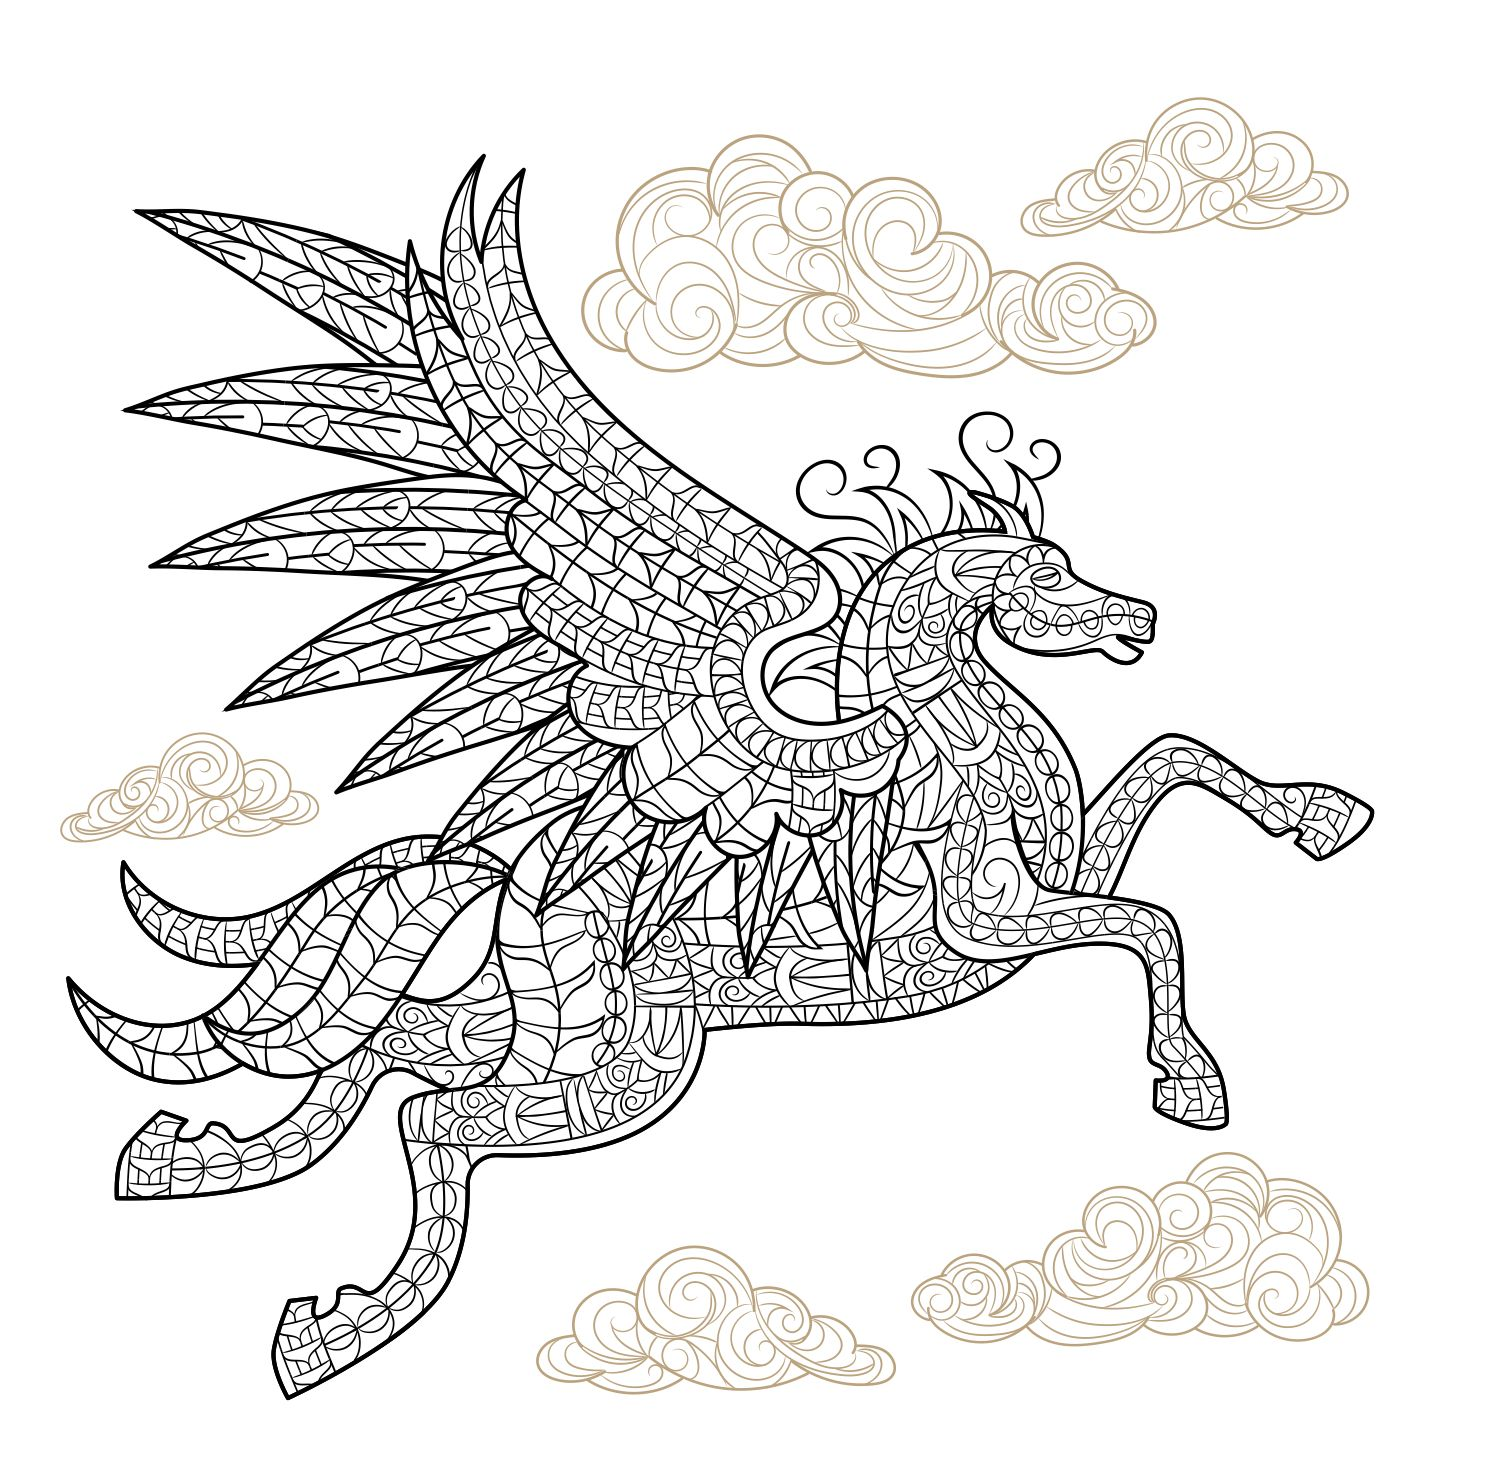 Pegasus Winged Horse Adult Coloring Page - Craftfoxes | Coloring ...